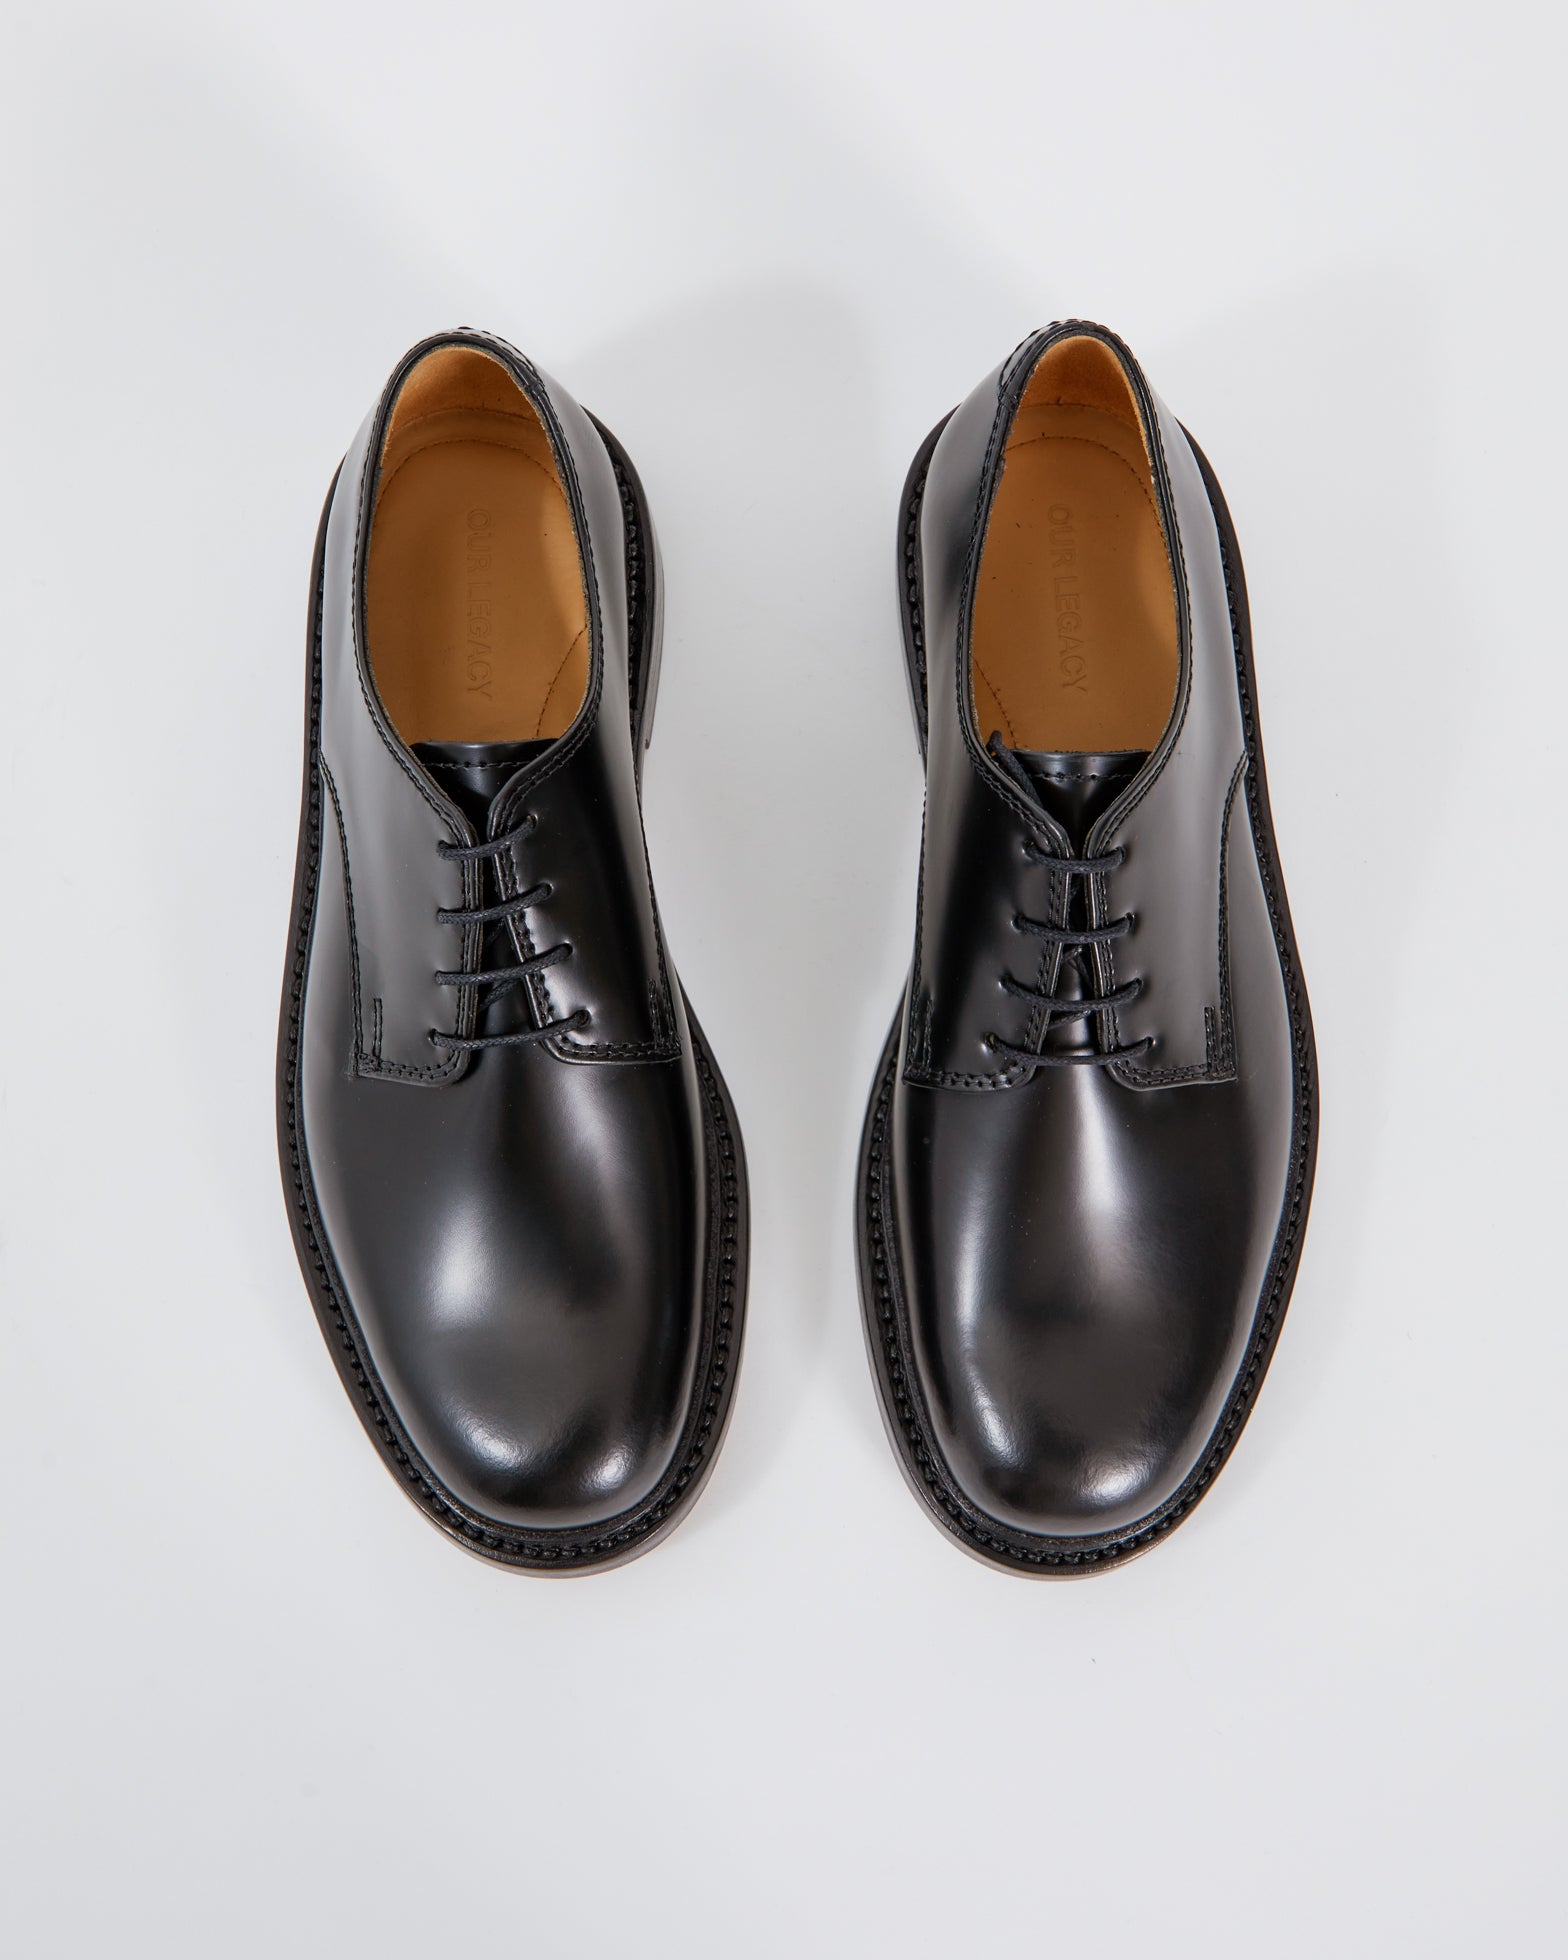 Uniform Parade Shoe in Black